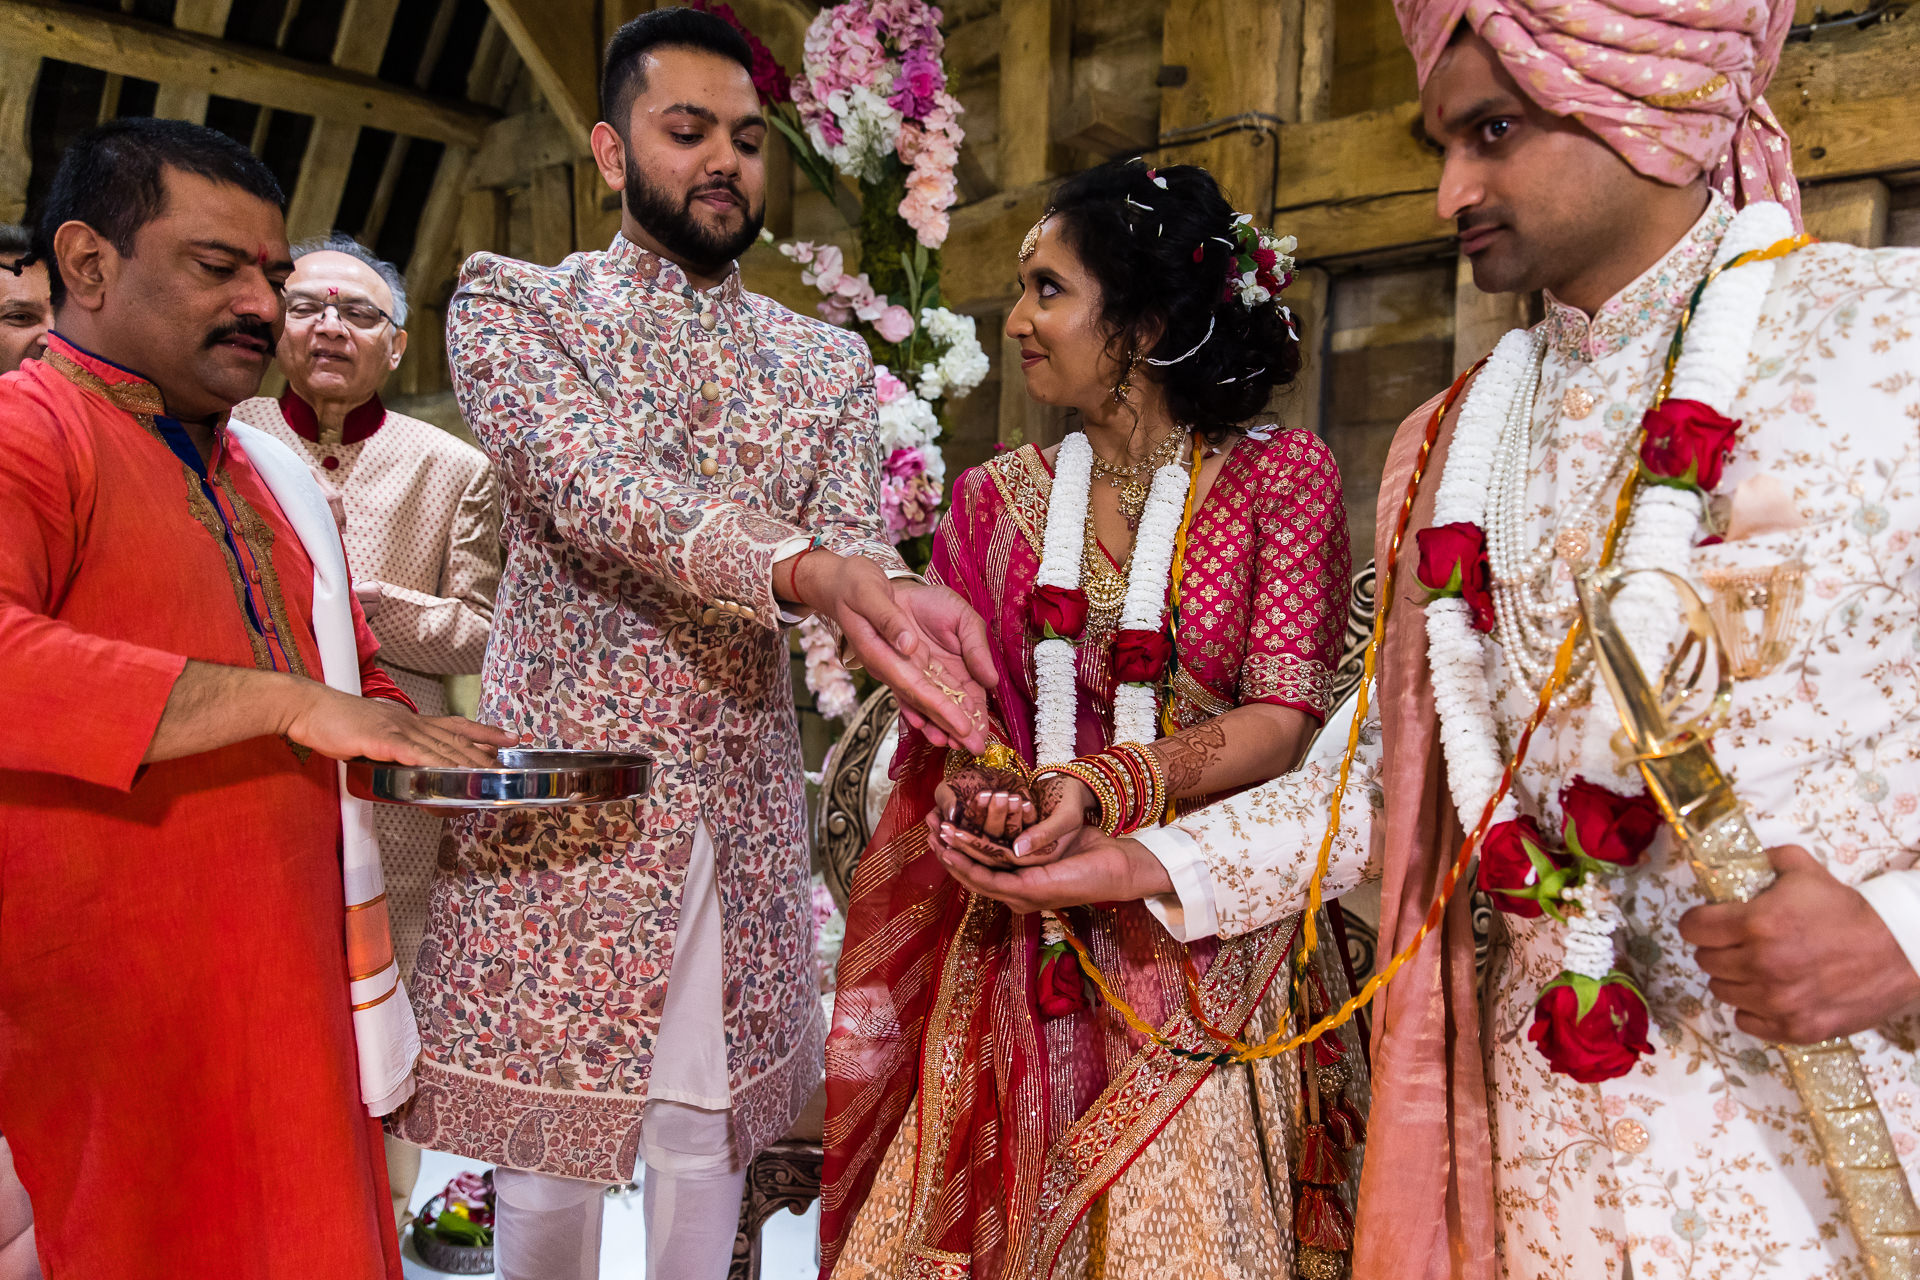 Hindu Wedding ceremony at The Priory Barn in Hitchen